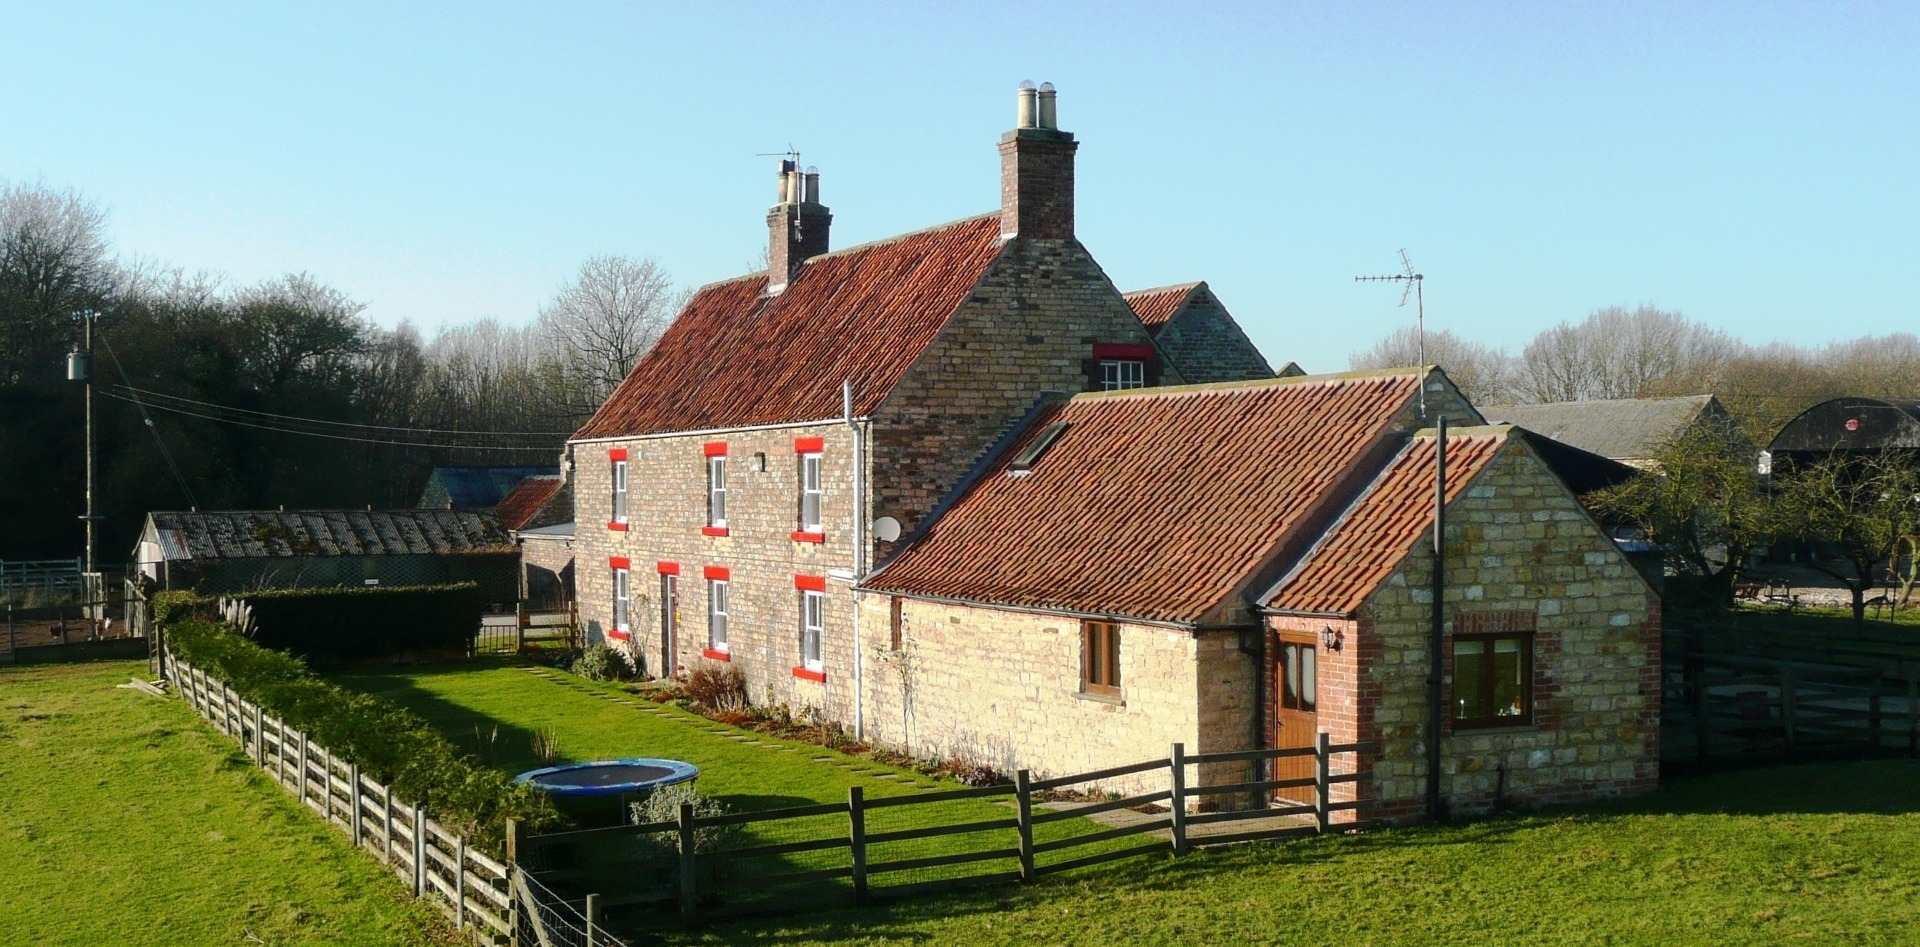 Appletree Cottage, adjoining Woodhouse Farm, Westow